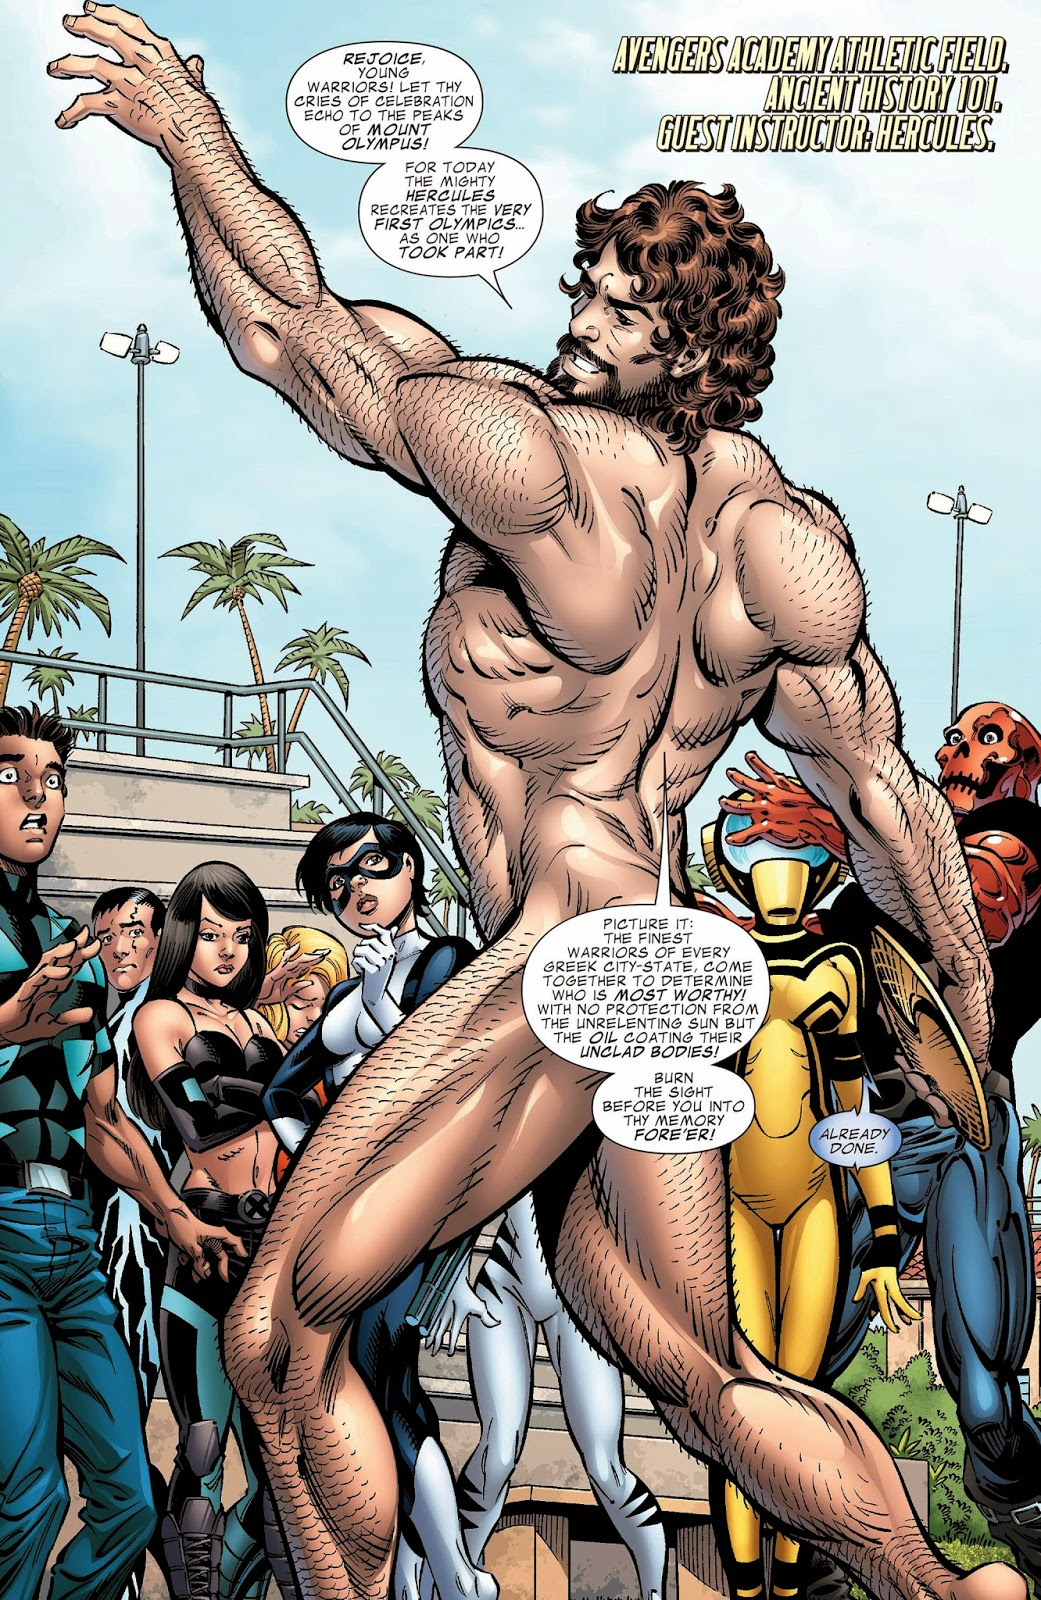 Naked superhero pictures